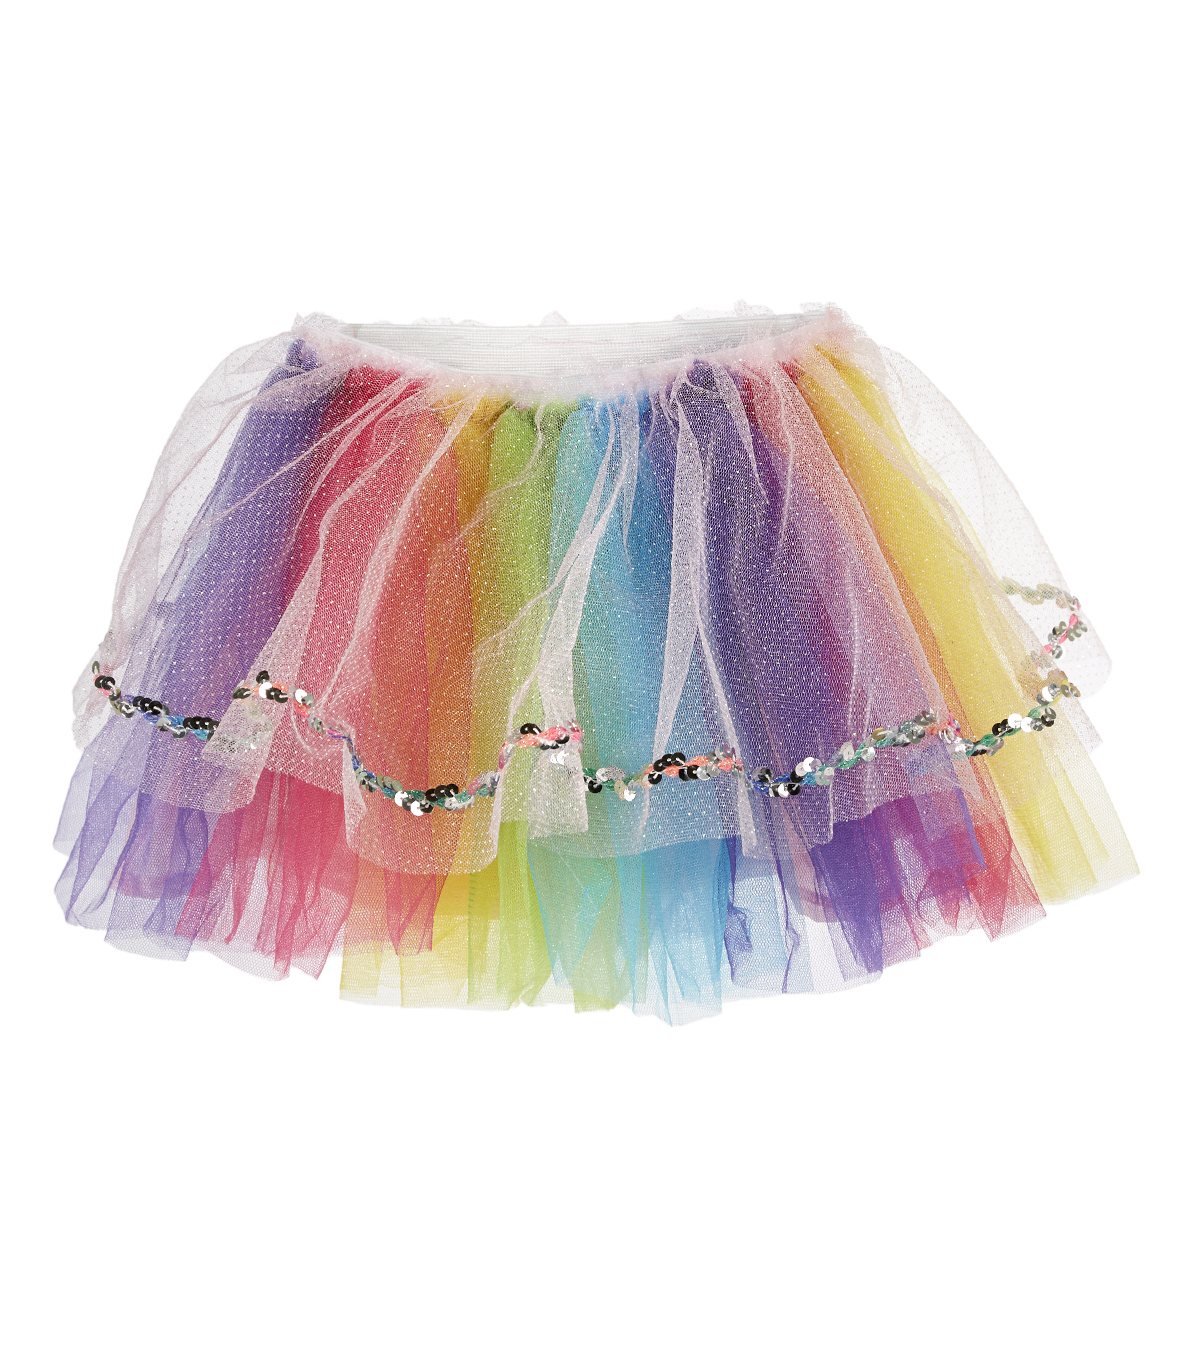 Fashion & Fluff™ Rainbow Fairy Tutu